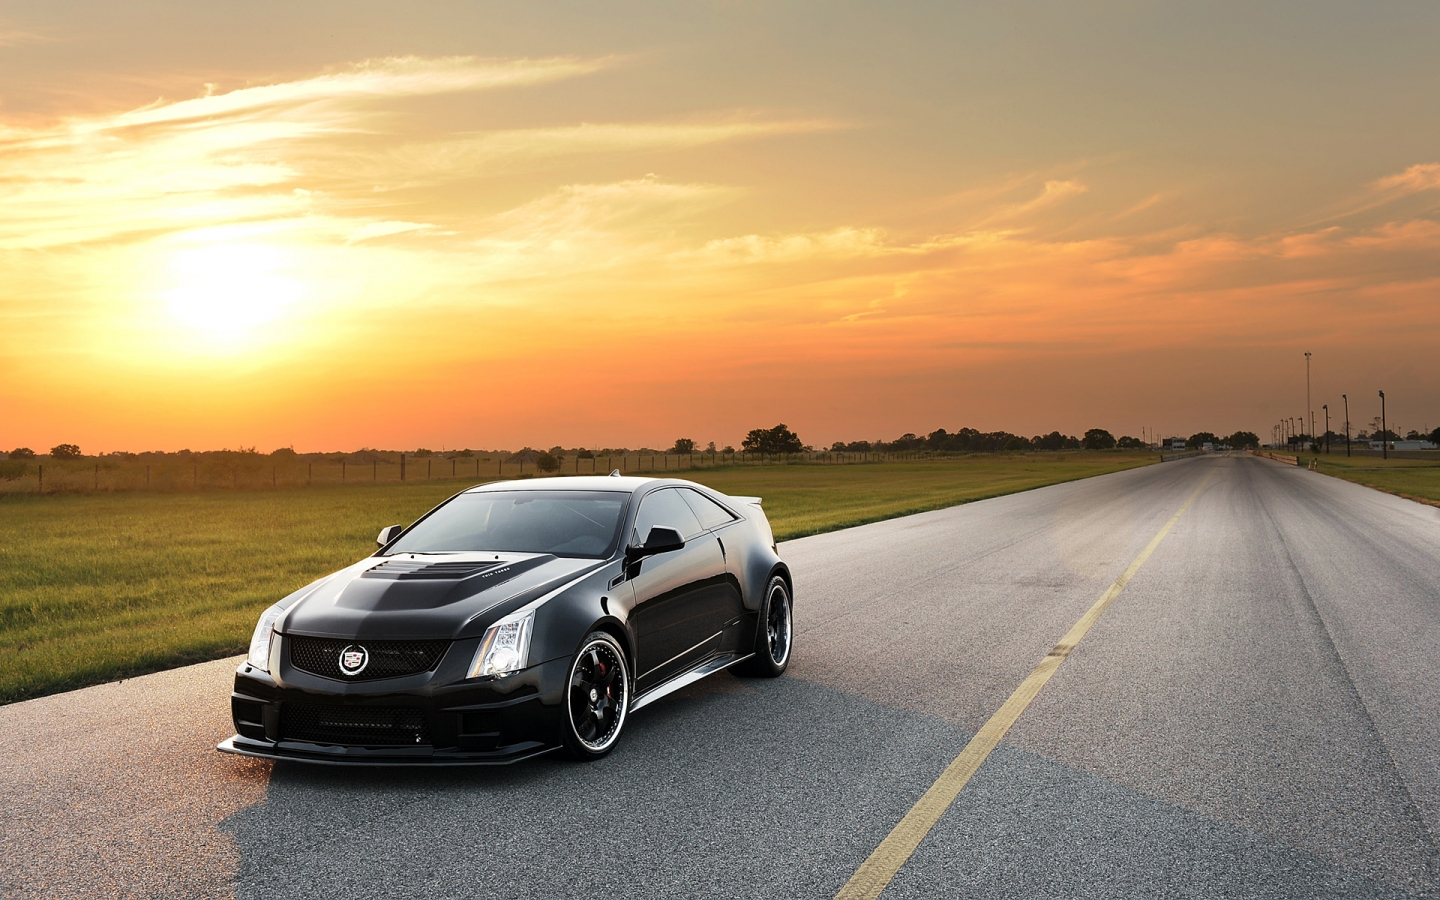 Hennessey Cadillac VR1200 - 1440x900